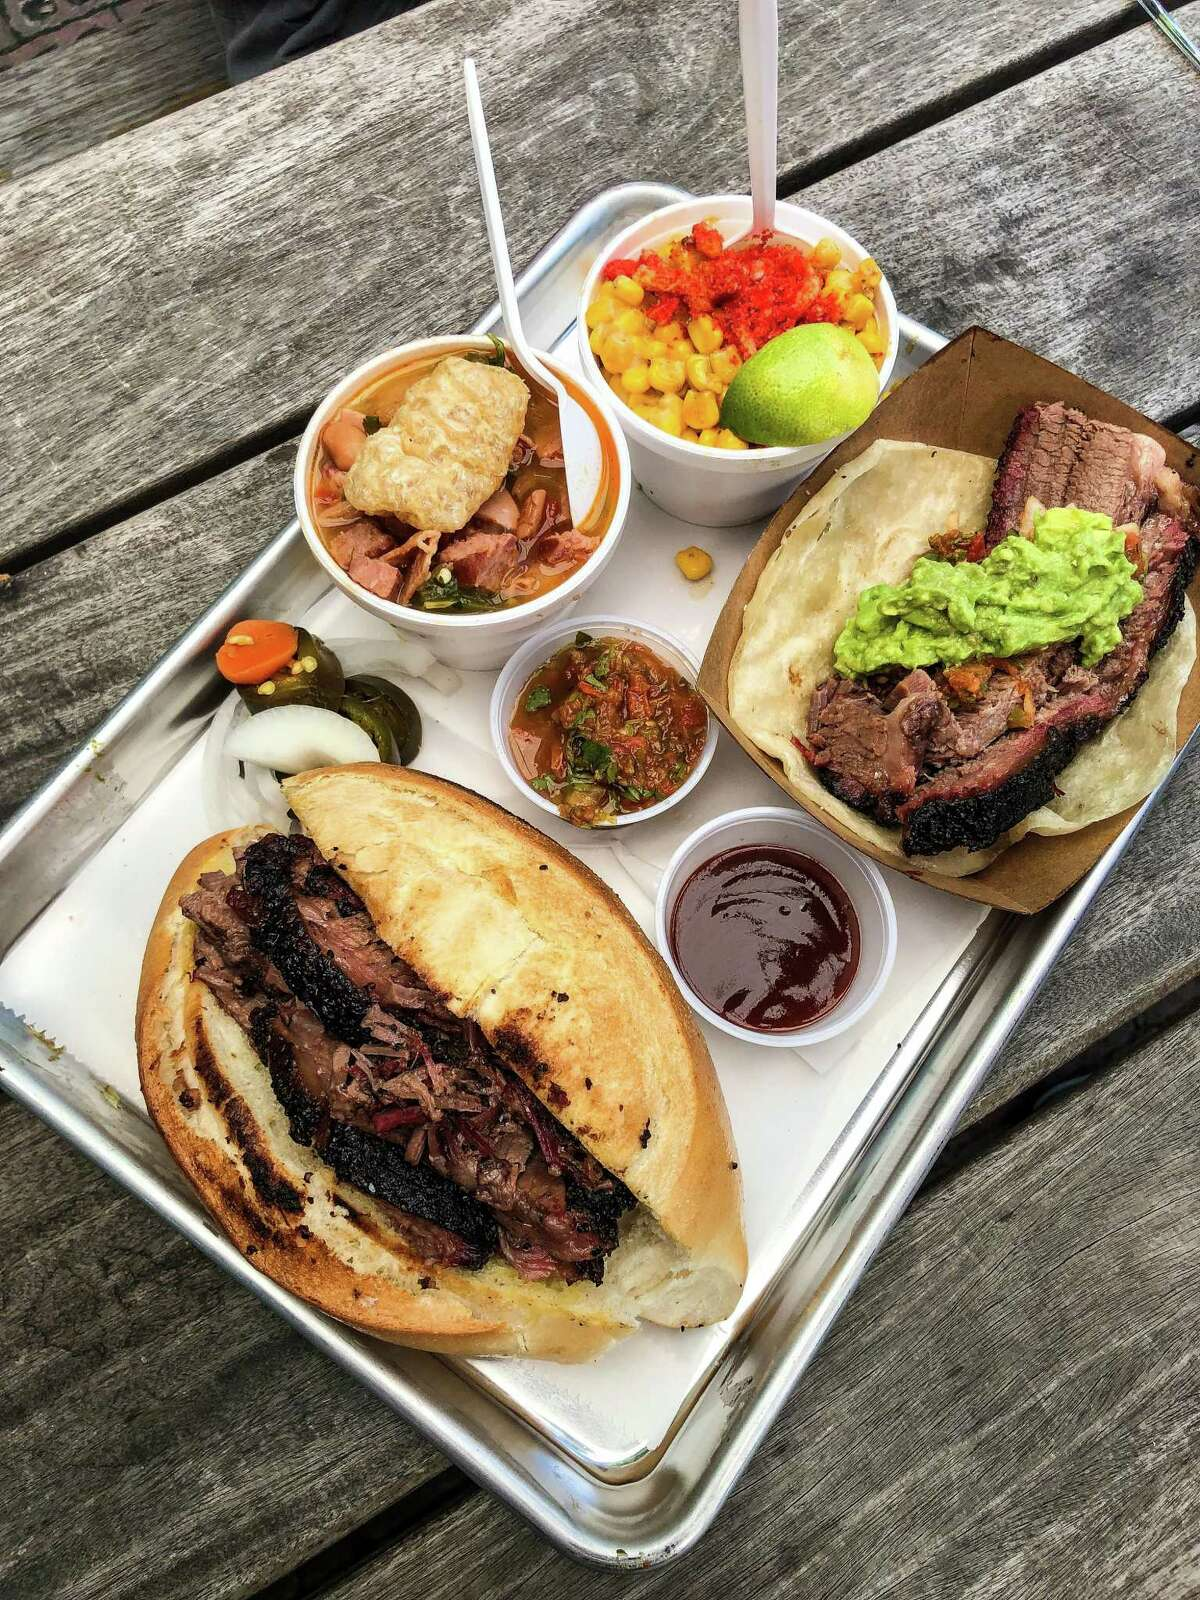 Tex-Mex barbecue plate with brisket bolillo, brisket taco, charro beans and elotes at Eddie O's Texas Barbecue pop-up at D&T Drive Inn.